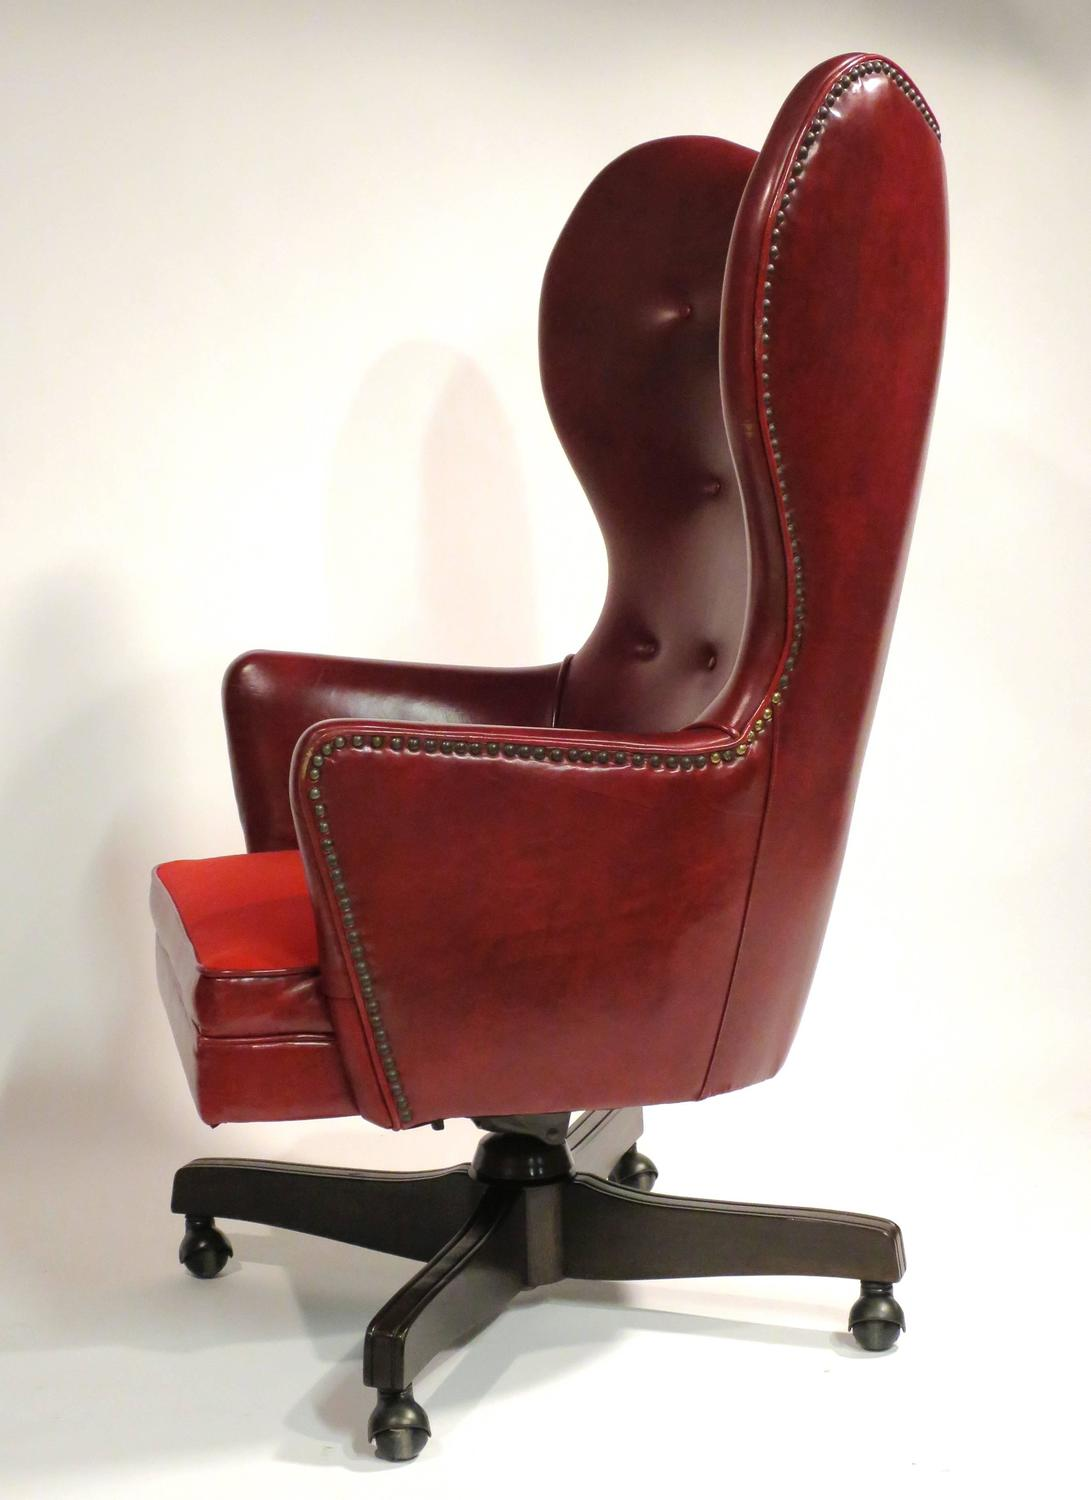 rolling chairs for office handicap sliding bath chair leather wingback by schafer bros at 1stdibs